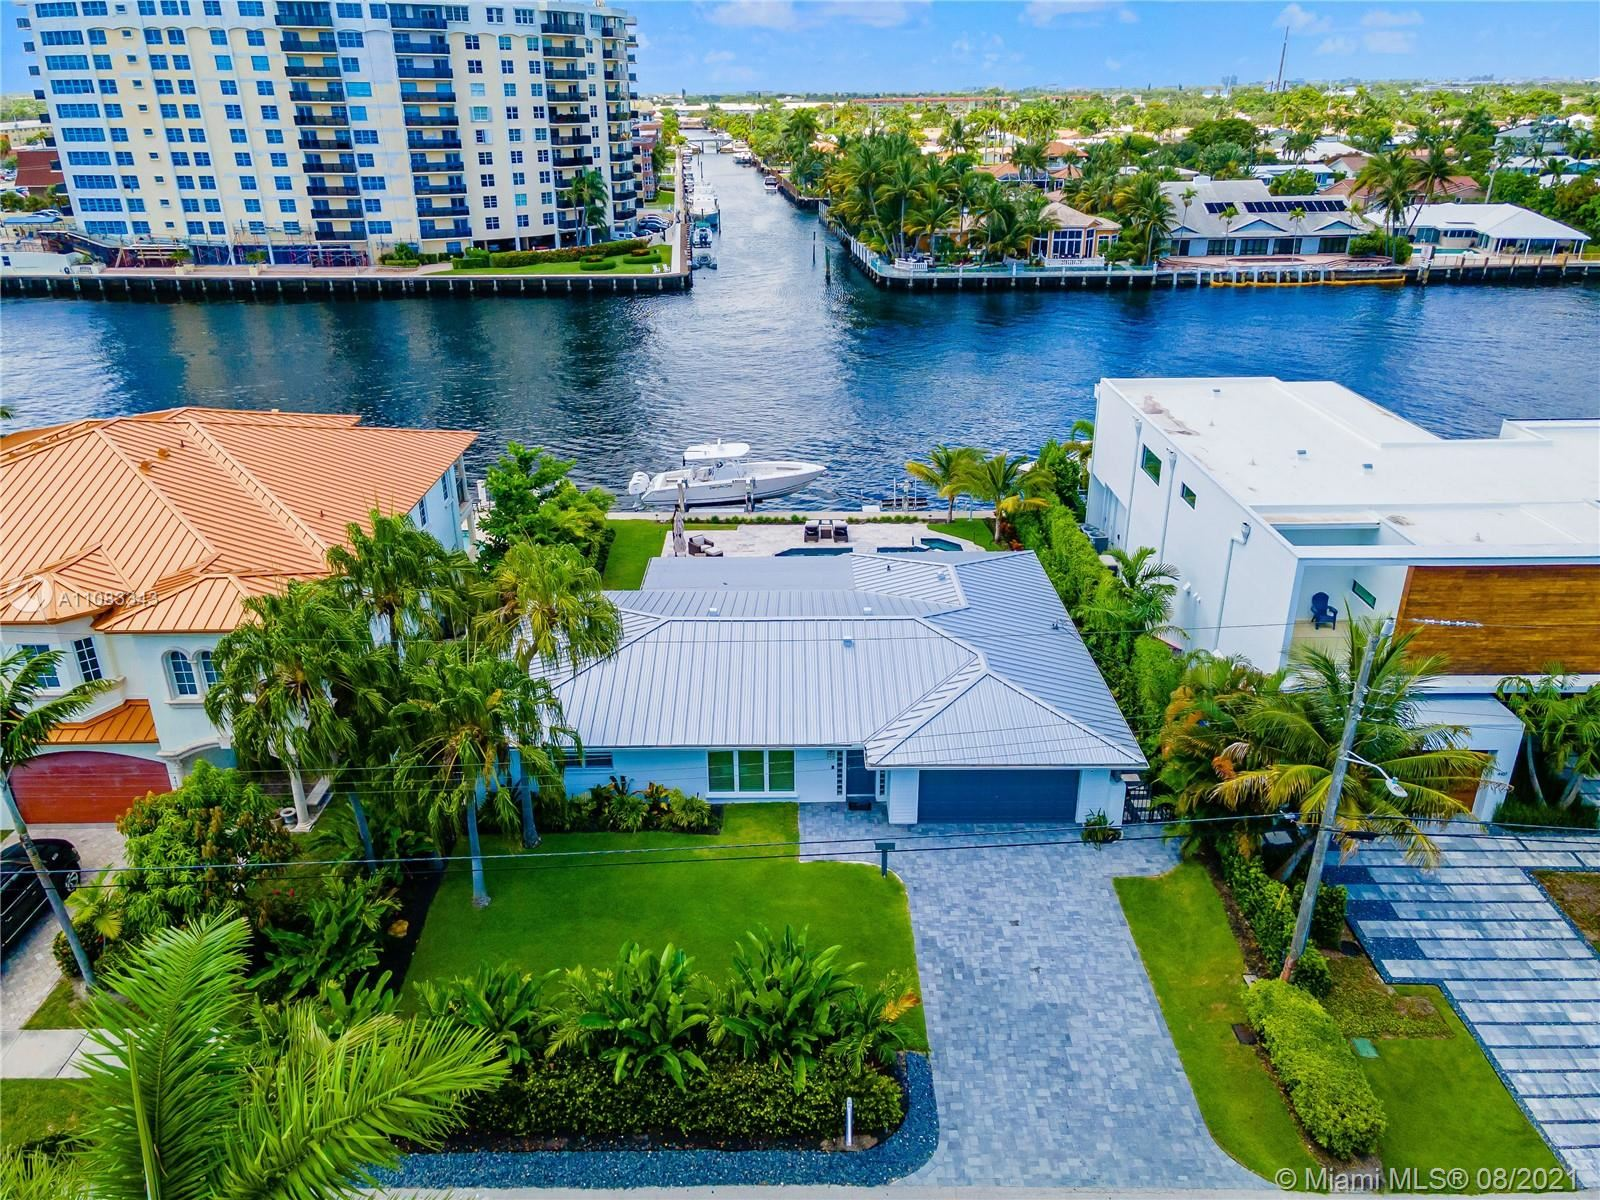 4431 W Tradewinds Ave, Lauderdale by the Sea, FL 33308 - #: A11083343